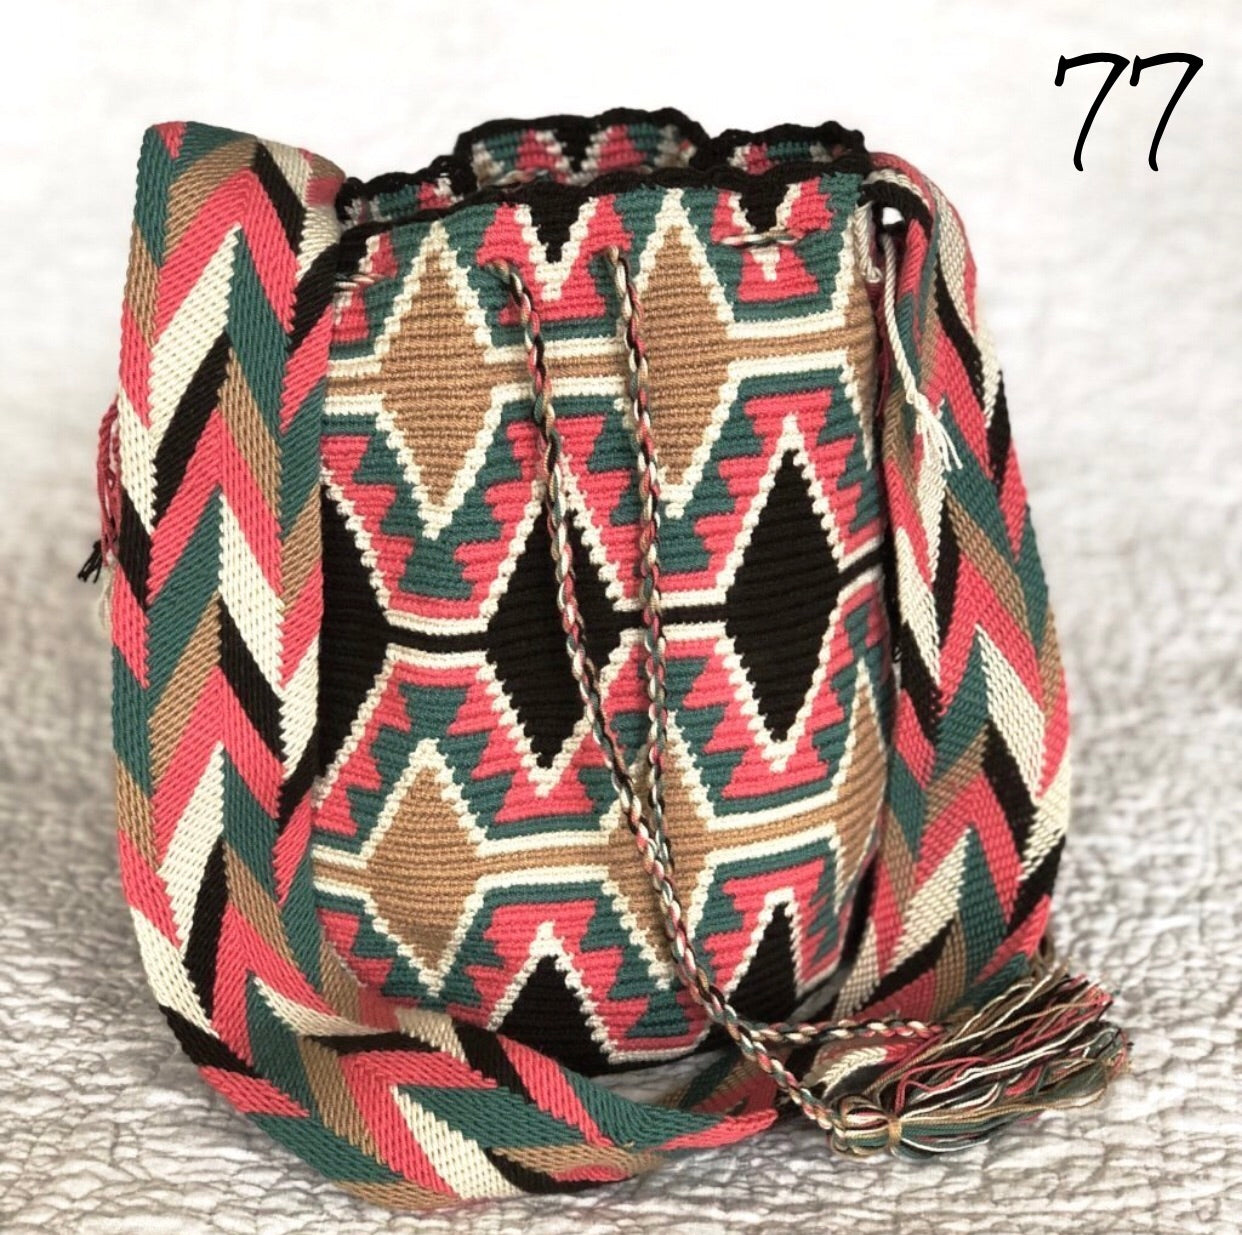 Colorful 4U | Desert Dreams Bag | Crossbody Boho Bags for Fall | Wayuu Mochila | Bohemian Bucket Bag camel diamonds